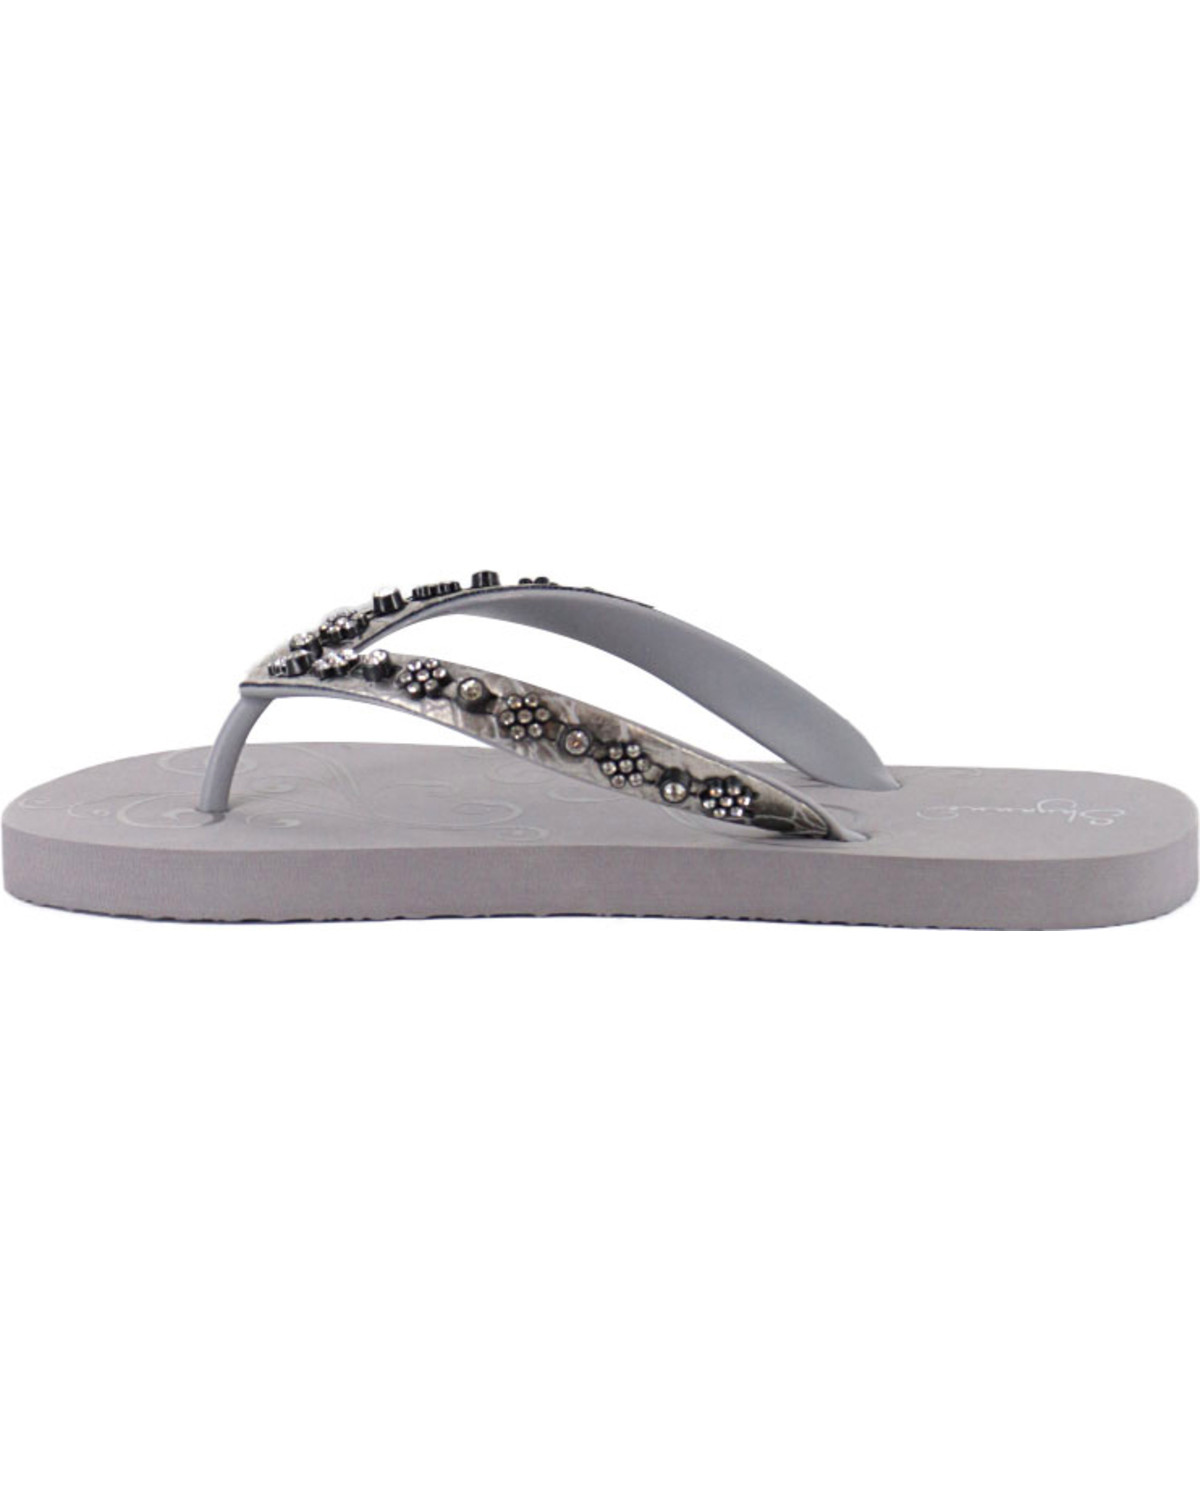 25c67c780 Shyanne® Women s Bling Sandals - Country Outfitter